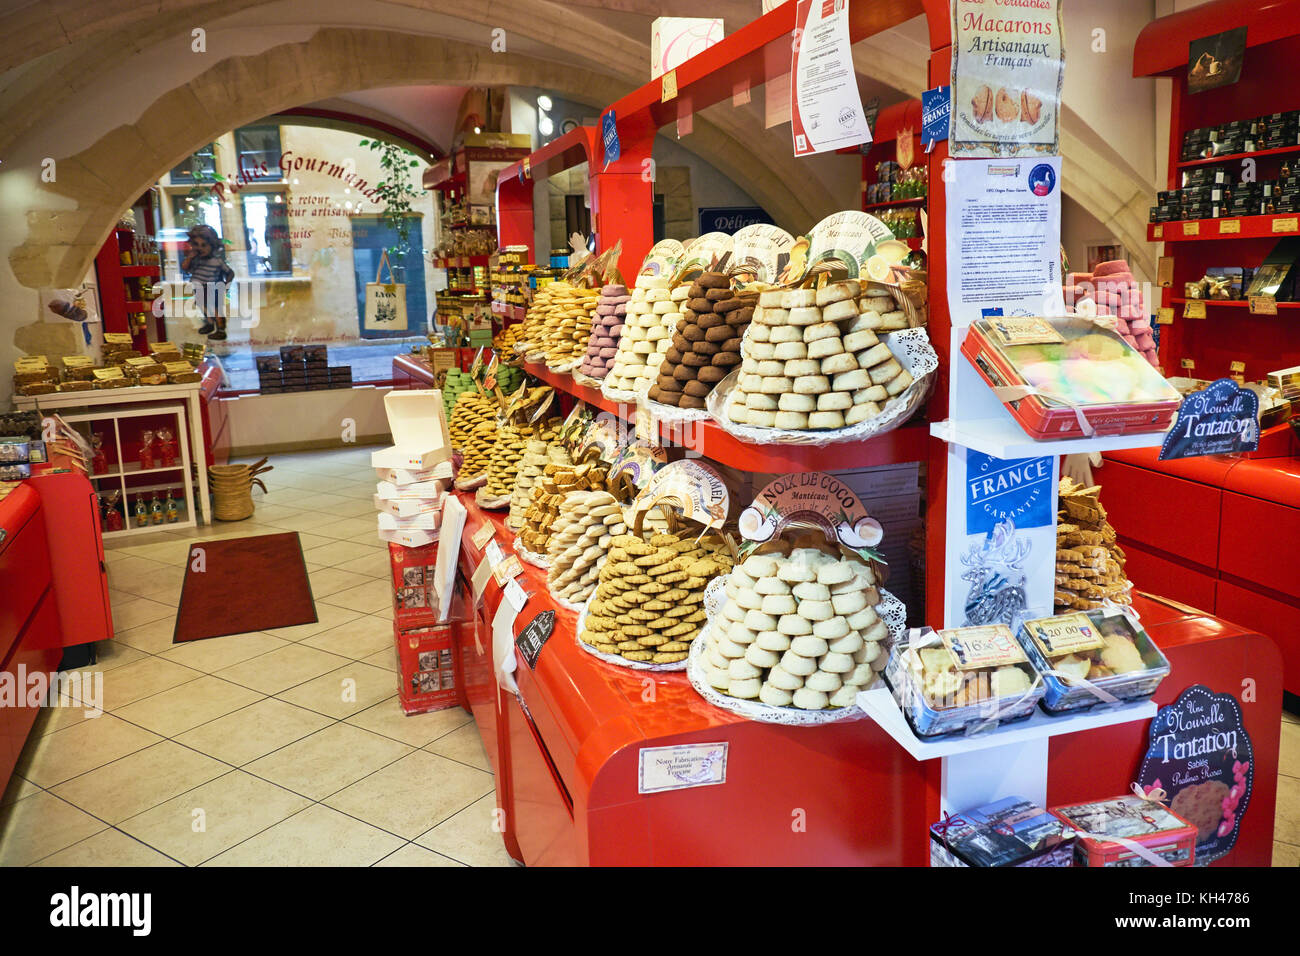 Pastry Shop Interior with Tastefully Arranged Sweets, Lyon, France - Stock Image